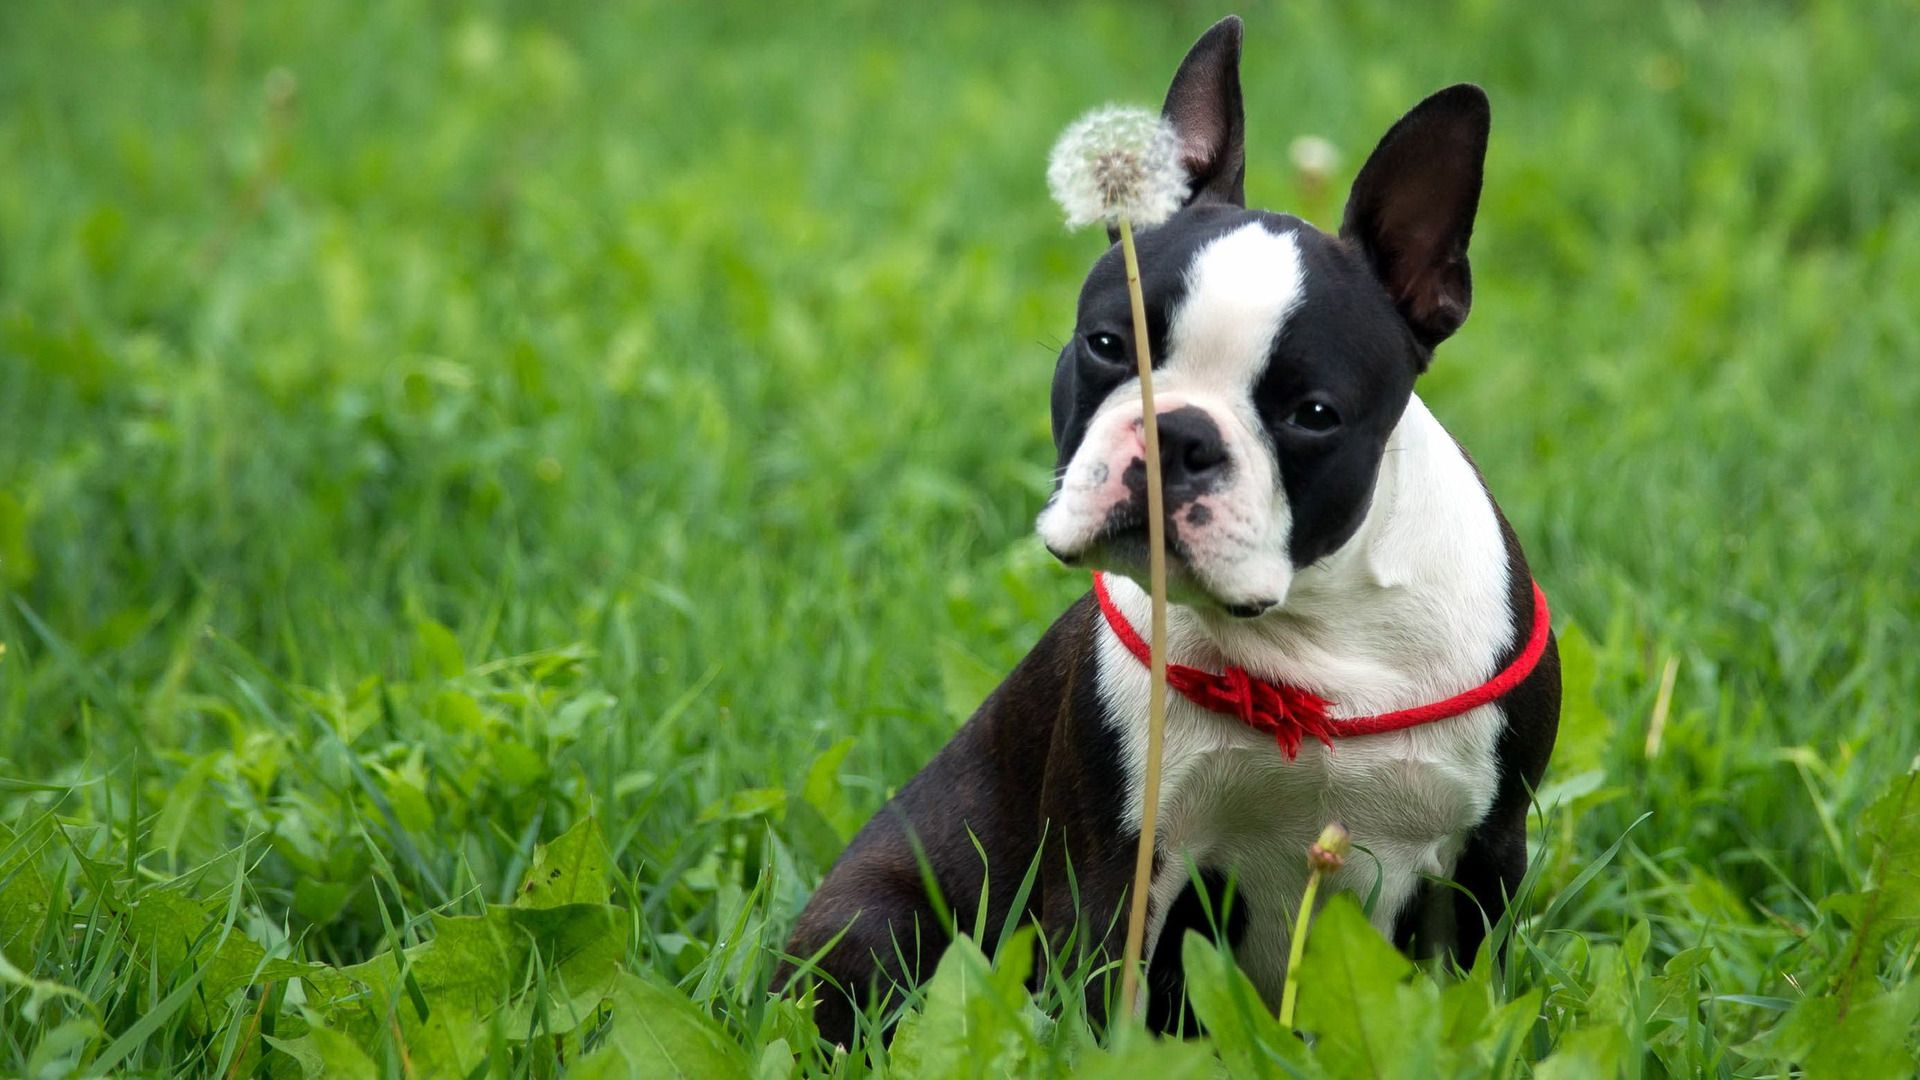 Boston Terrier Wallpaper Free Download - Page 2 of 3 - wallpaper.wiki